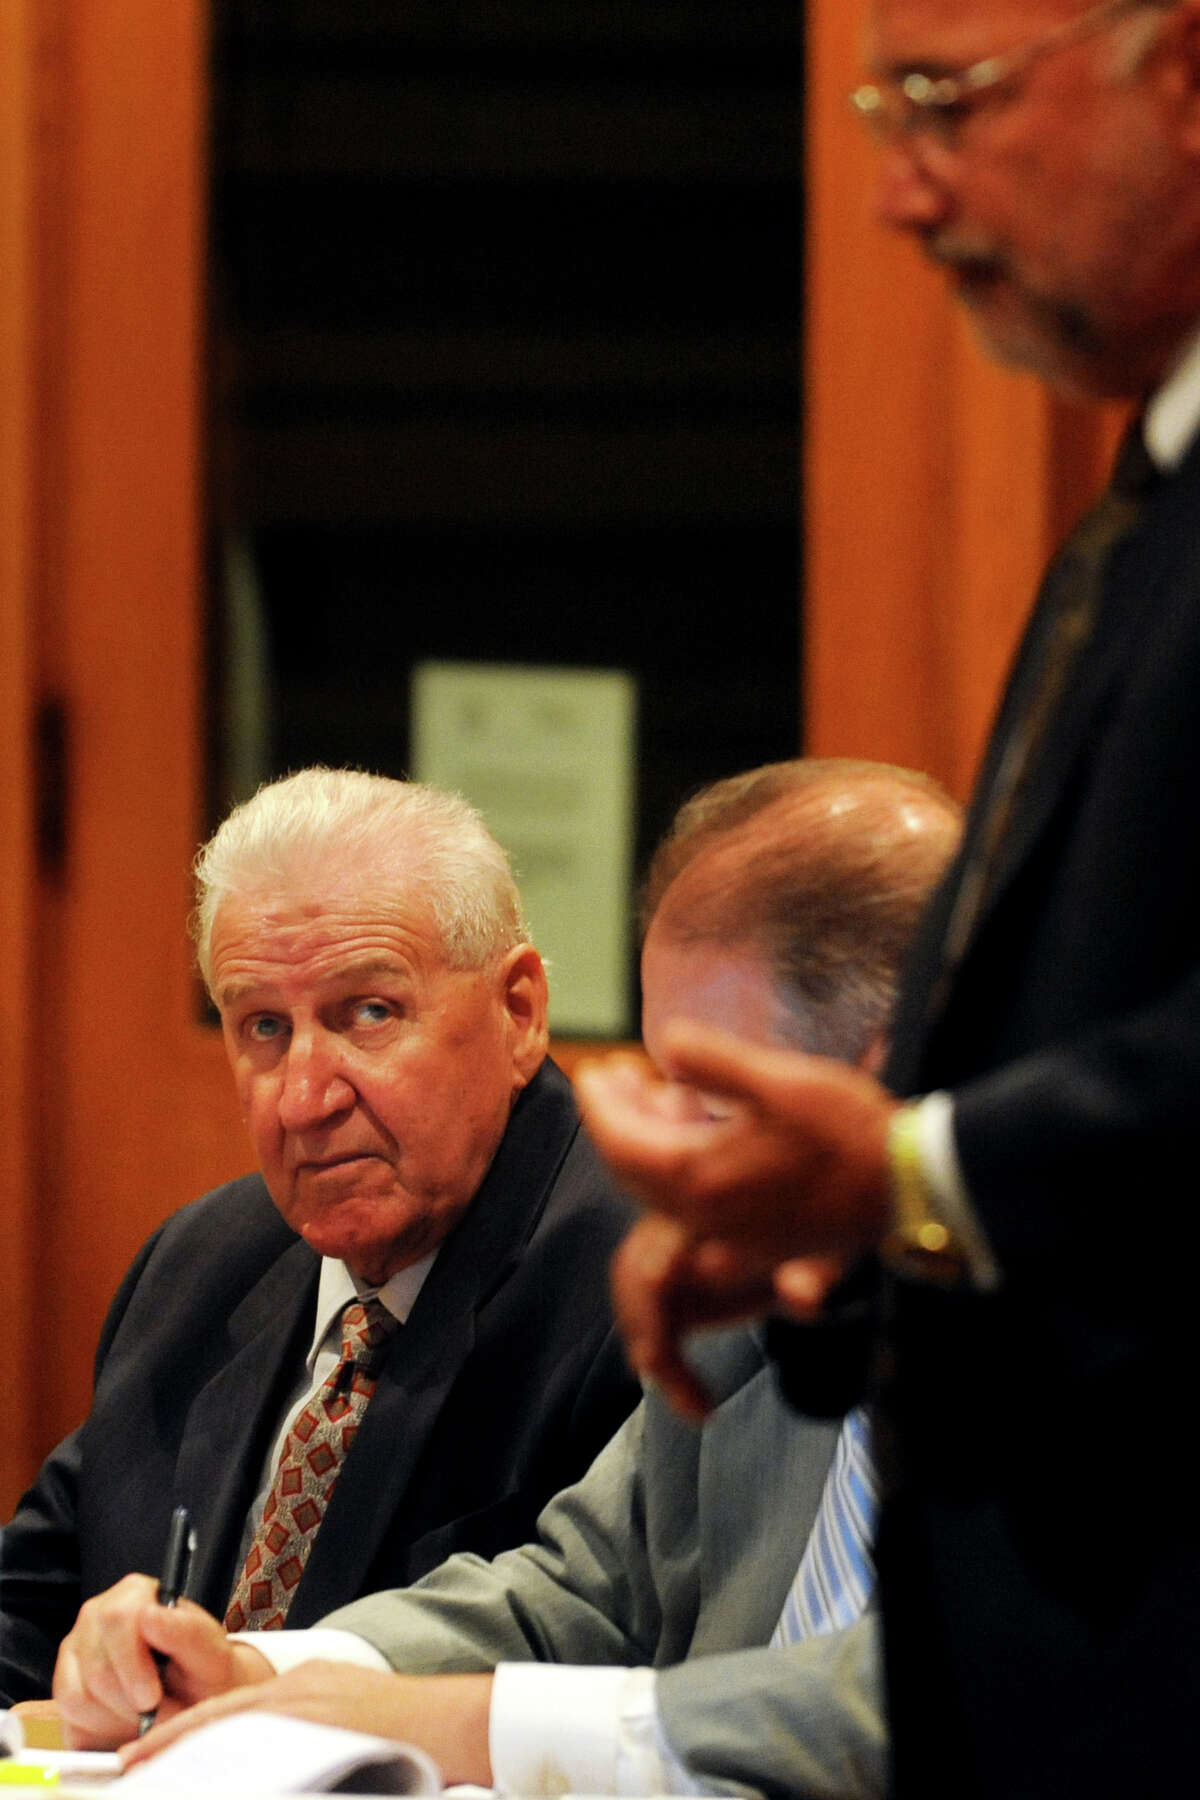 Dominic Badaracco Sr., left, listens as his attorney, Richard Meehan, right, speaks during the first day of his trial in Bridgeport Superior Court, in Bridgeport, Conn., June 24th, 2013. Badaracco is accused of offering a $100,000 bribe to Judge Robert Brunetti in 2010.